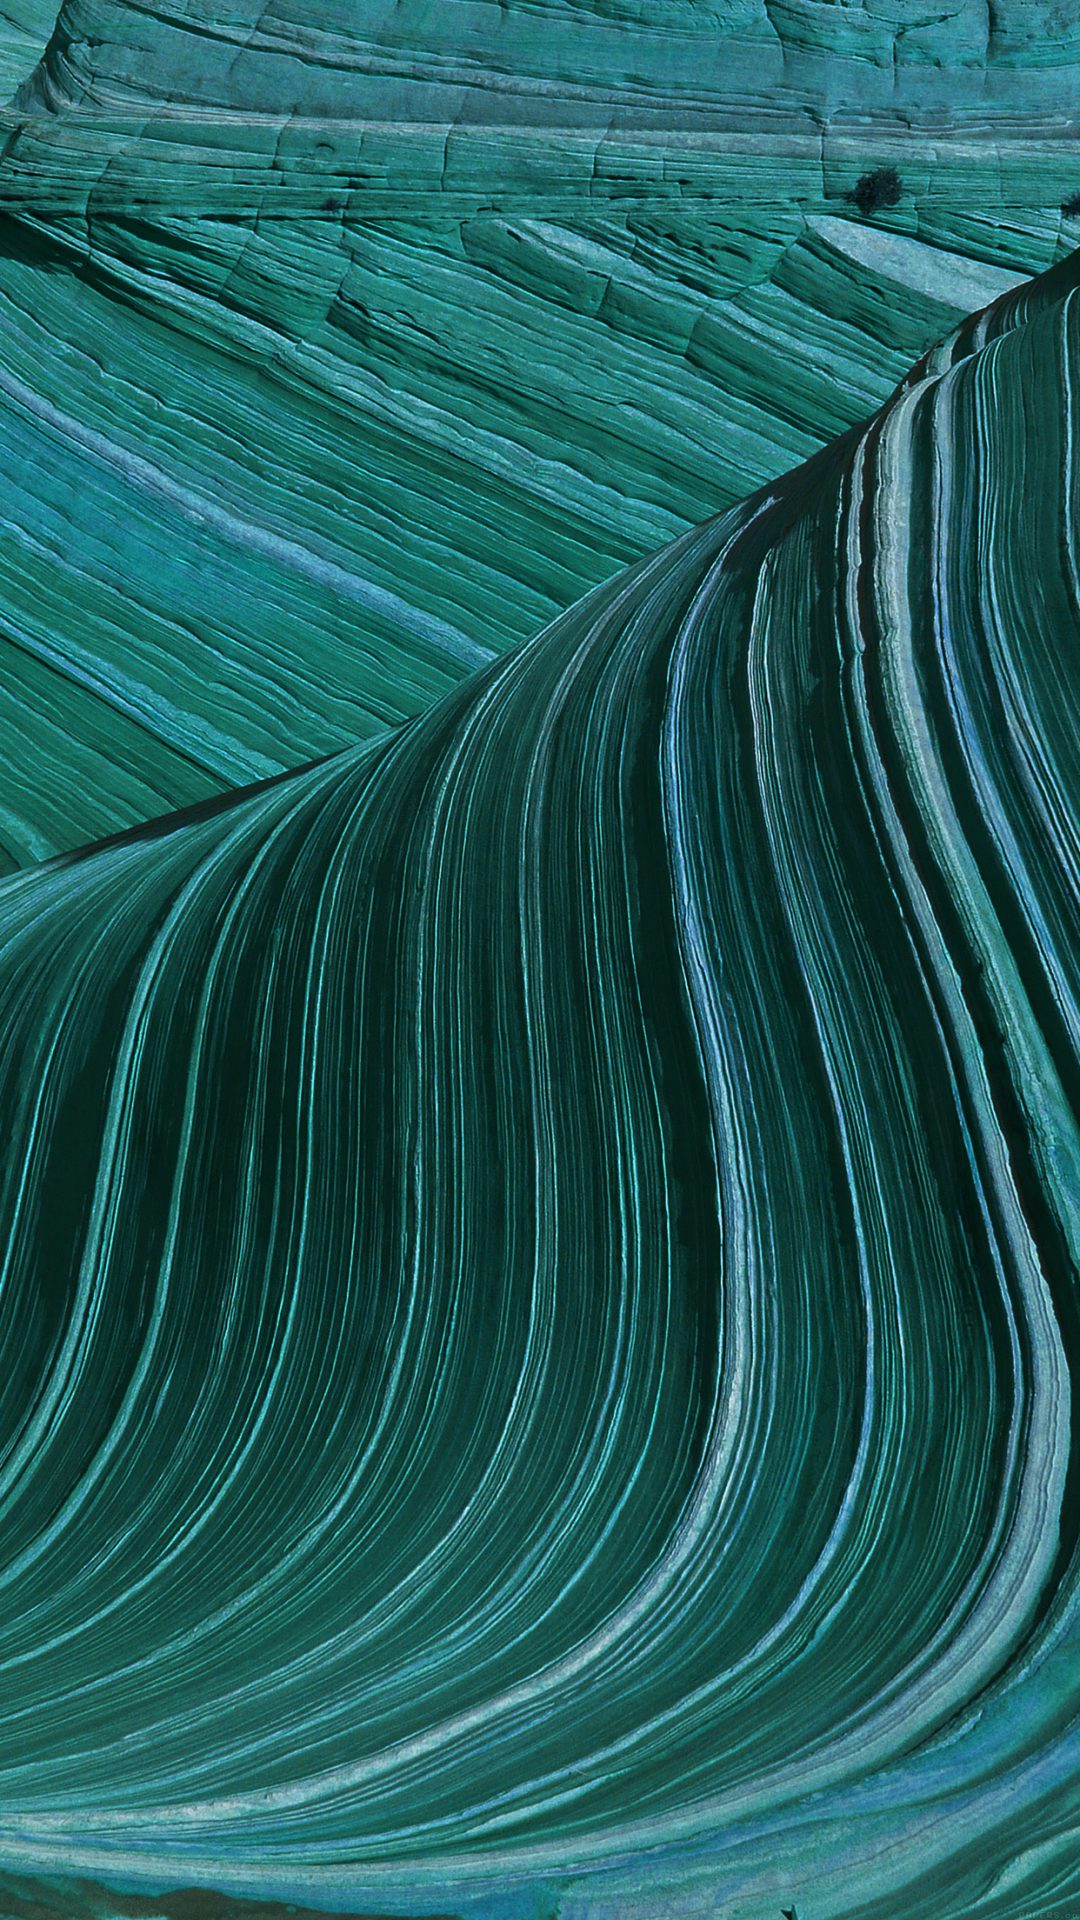 Swirling Patterns Wave Green Mountain Nature